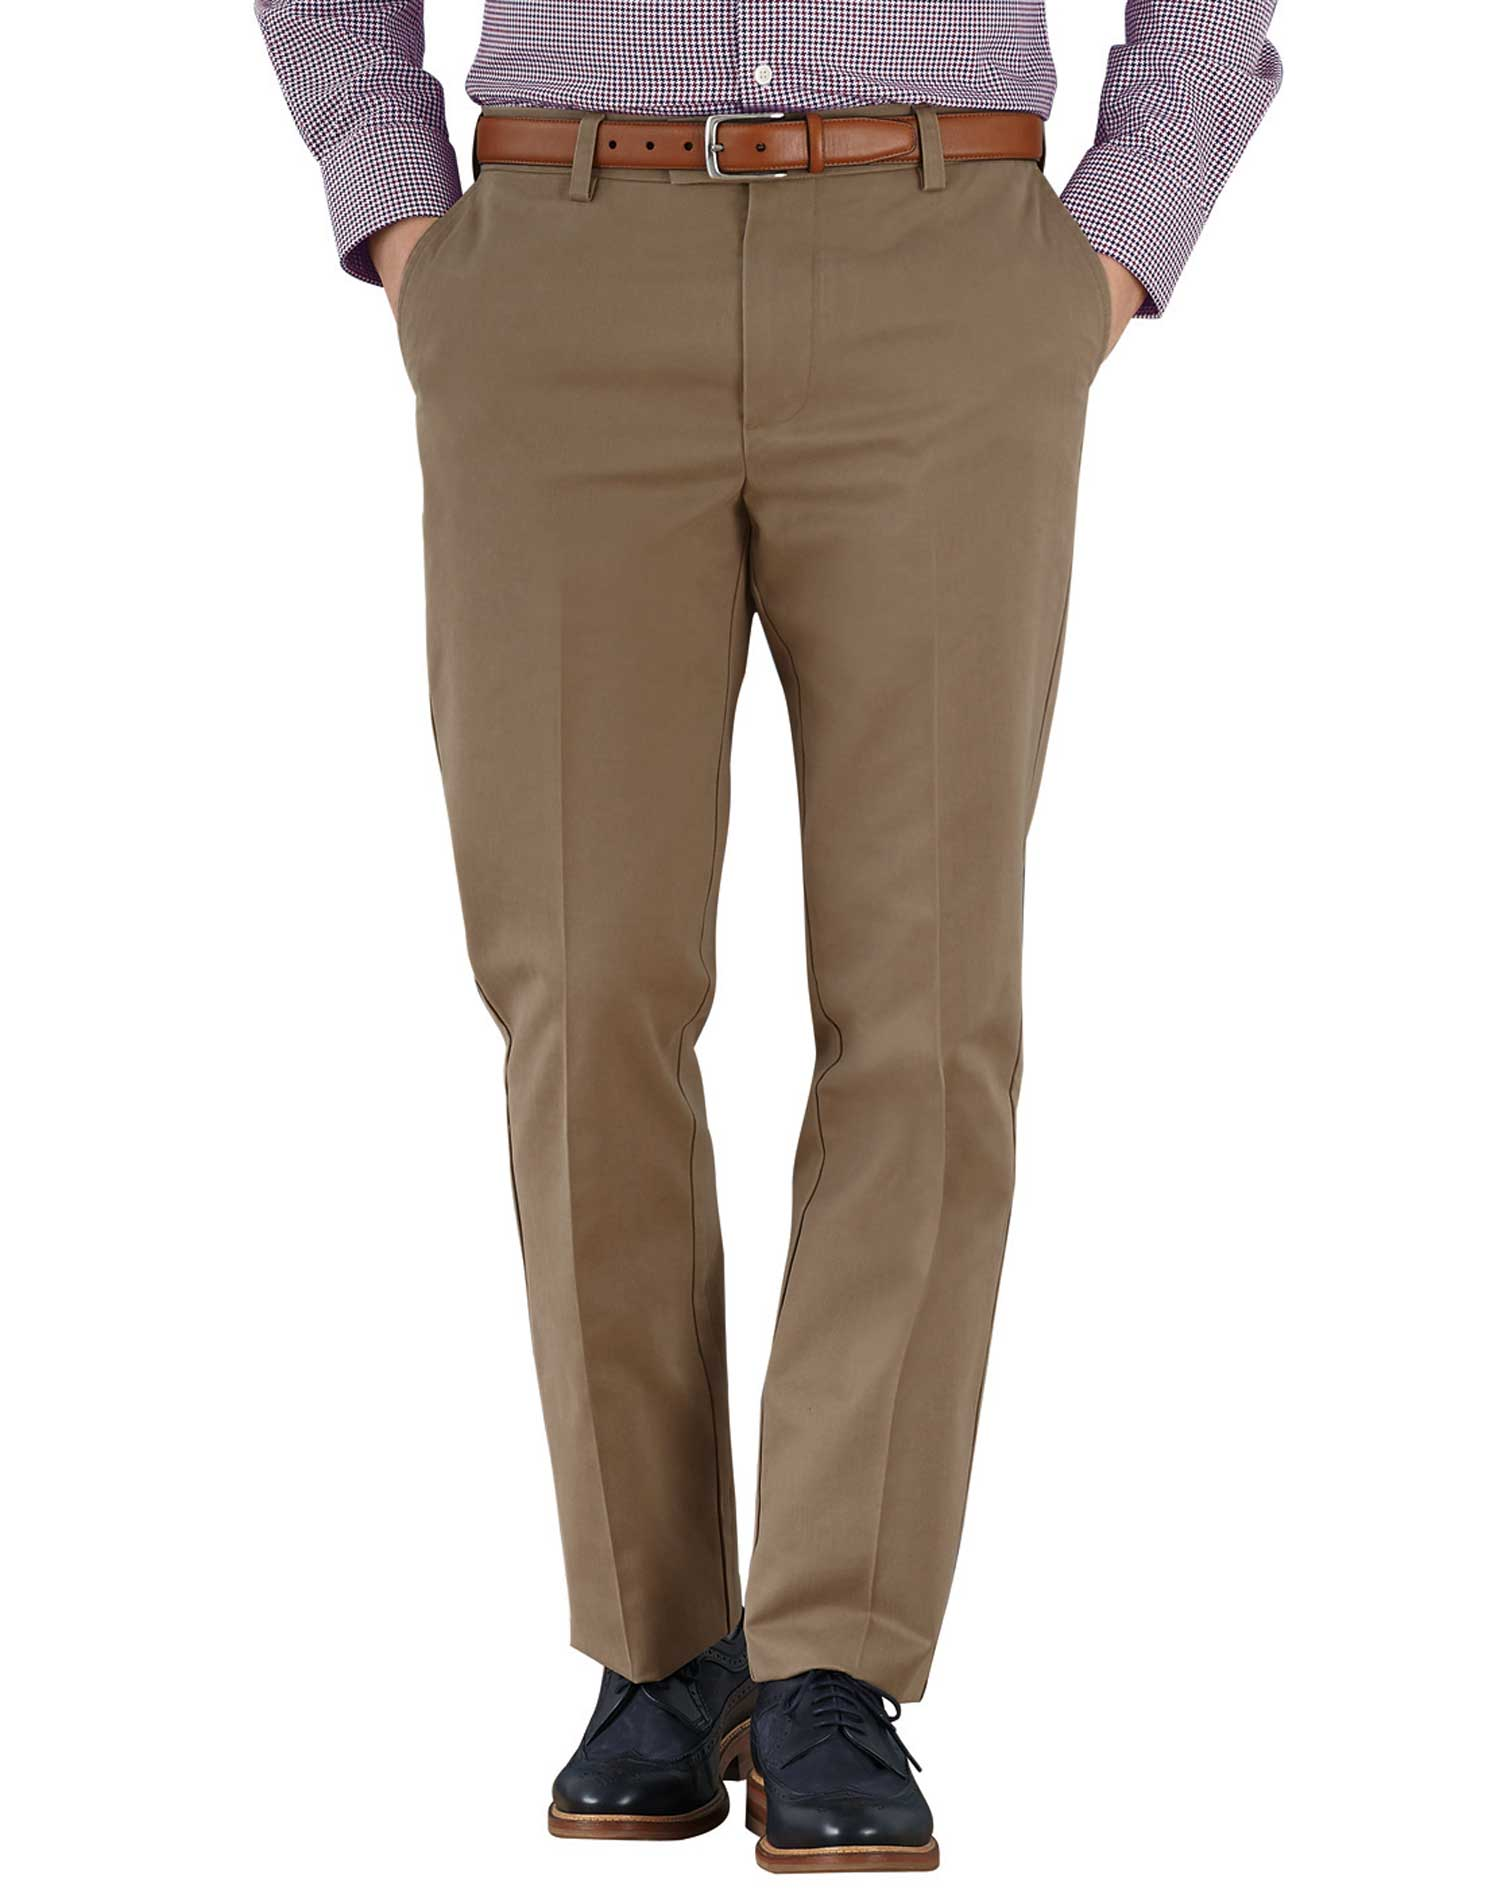 Tan Slim Fit Flat Front Non-Iron Cotton Chino Trousers Size W34 L34 by Charles Tyrwhitt